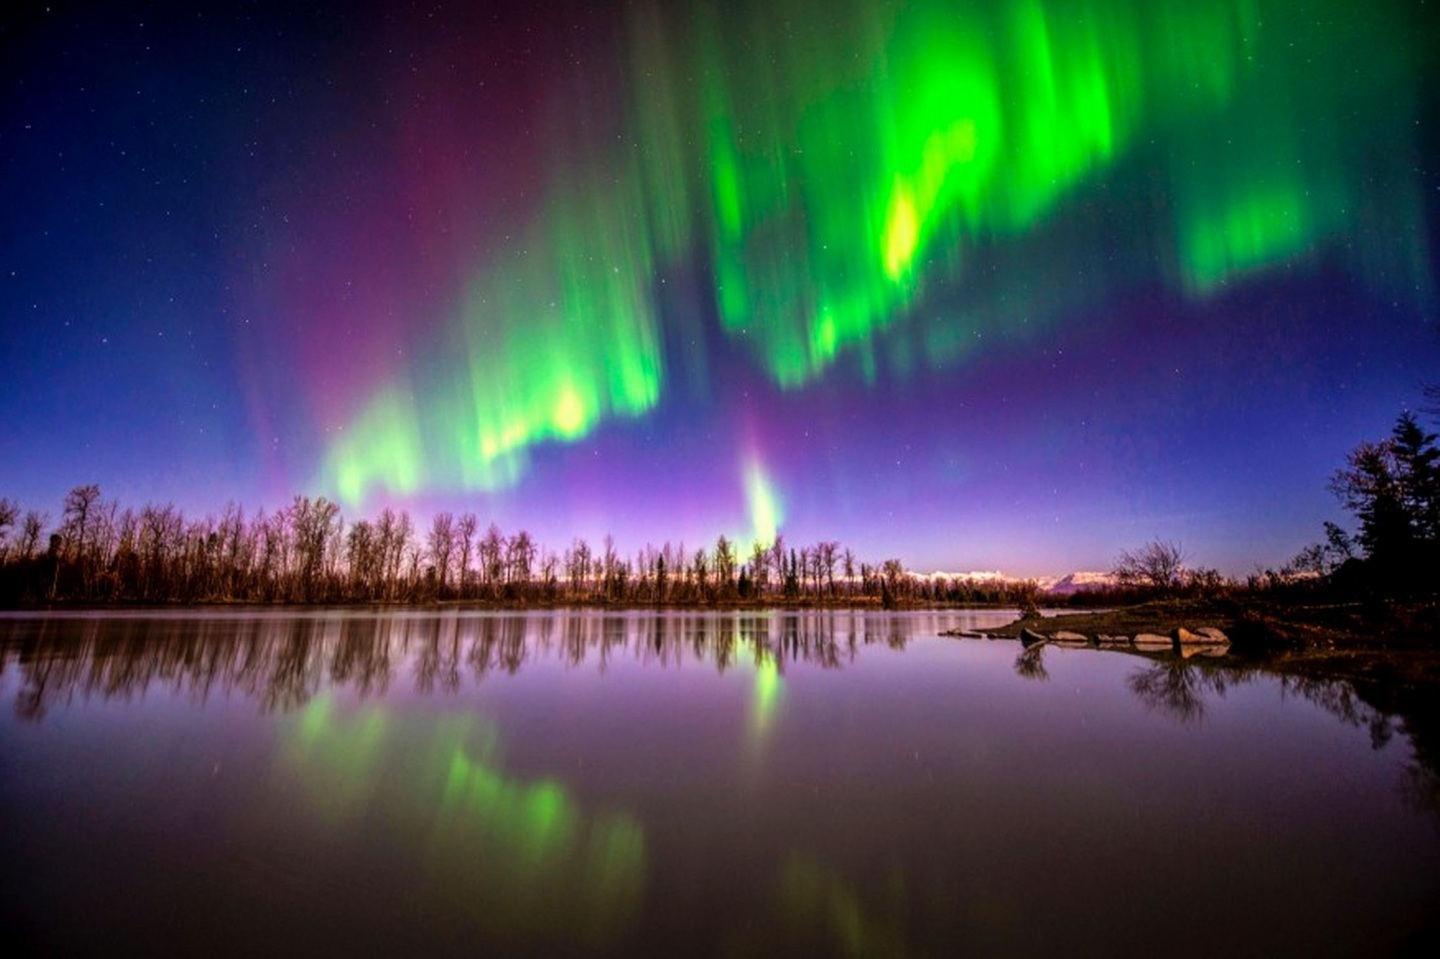 Water Fall Effect Wallpaper Aurora Borealis The Wonderful Light In The North Pole S